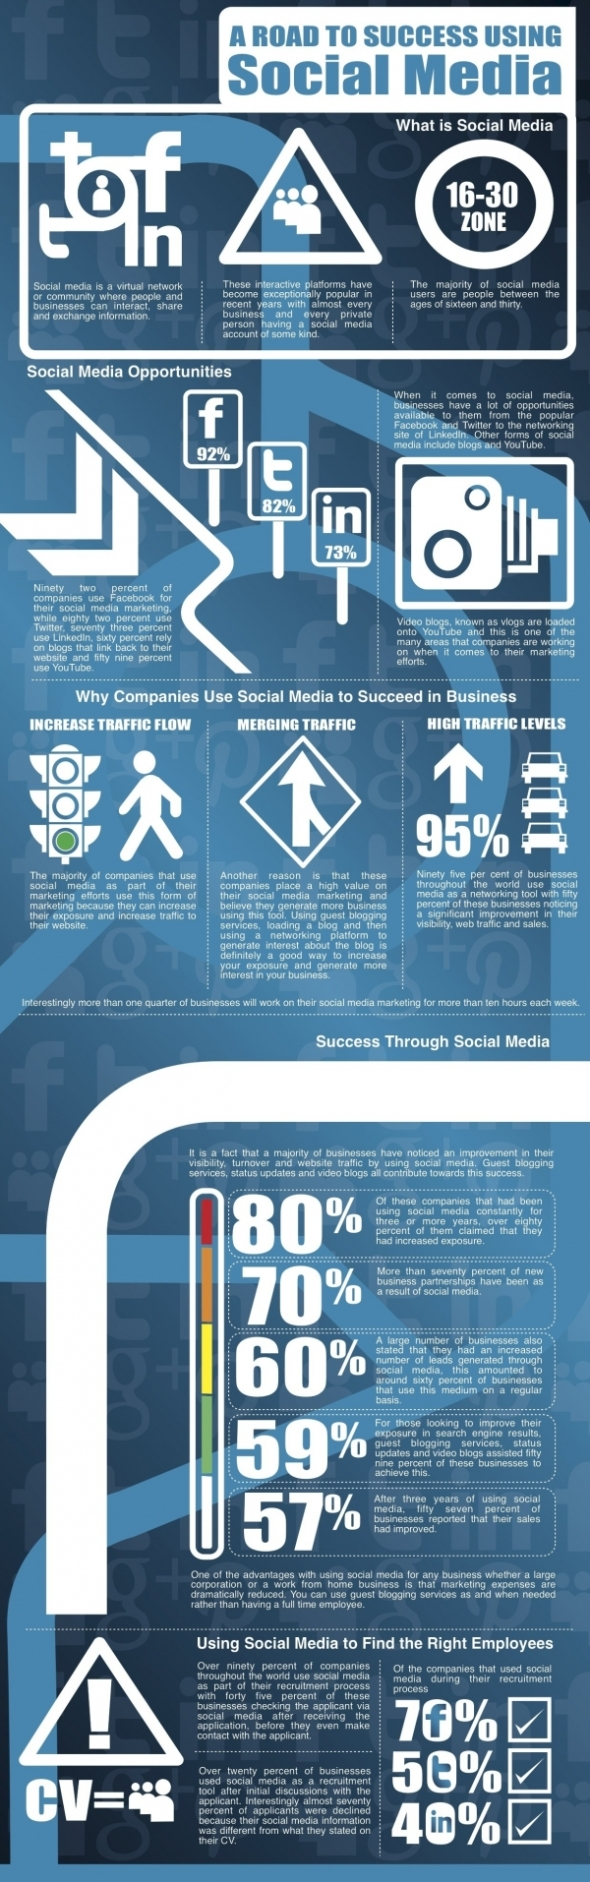 the-road-to-success-using-social-media_workplace emporium office cubicles